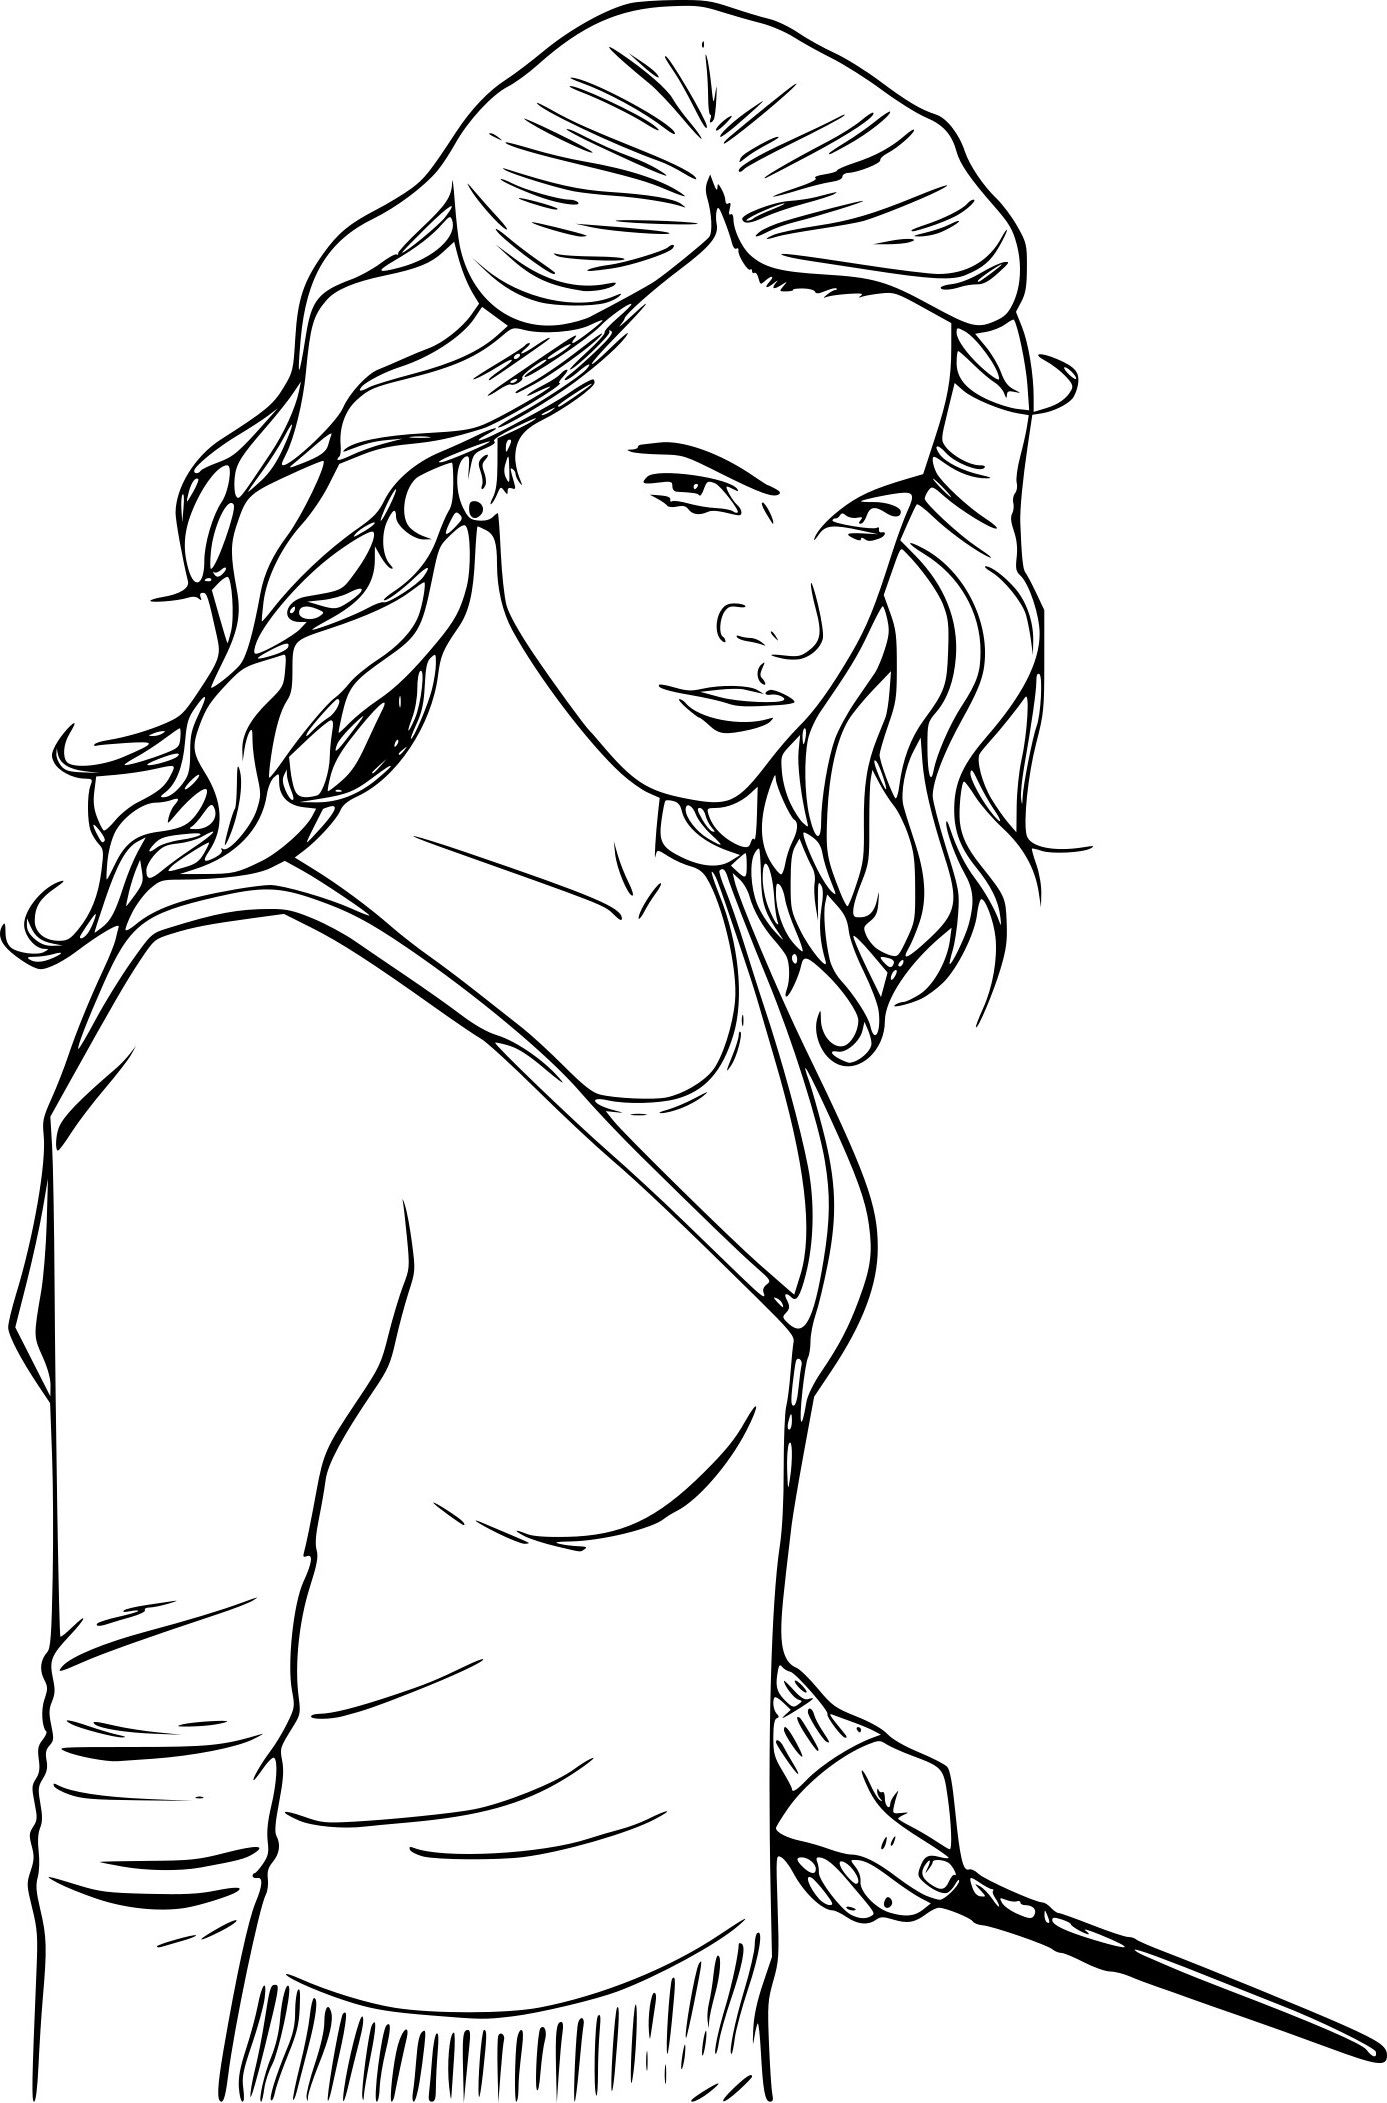 Dessin harry potter a imprimer gratuit superbe image coloriage harry potter hermione et ron - Harry potter dessin ...